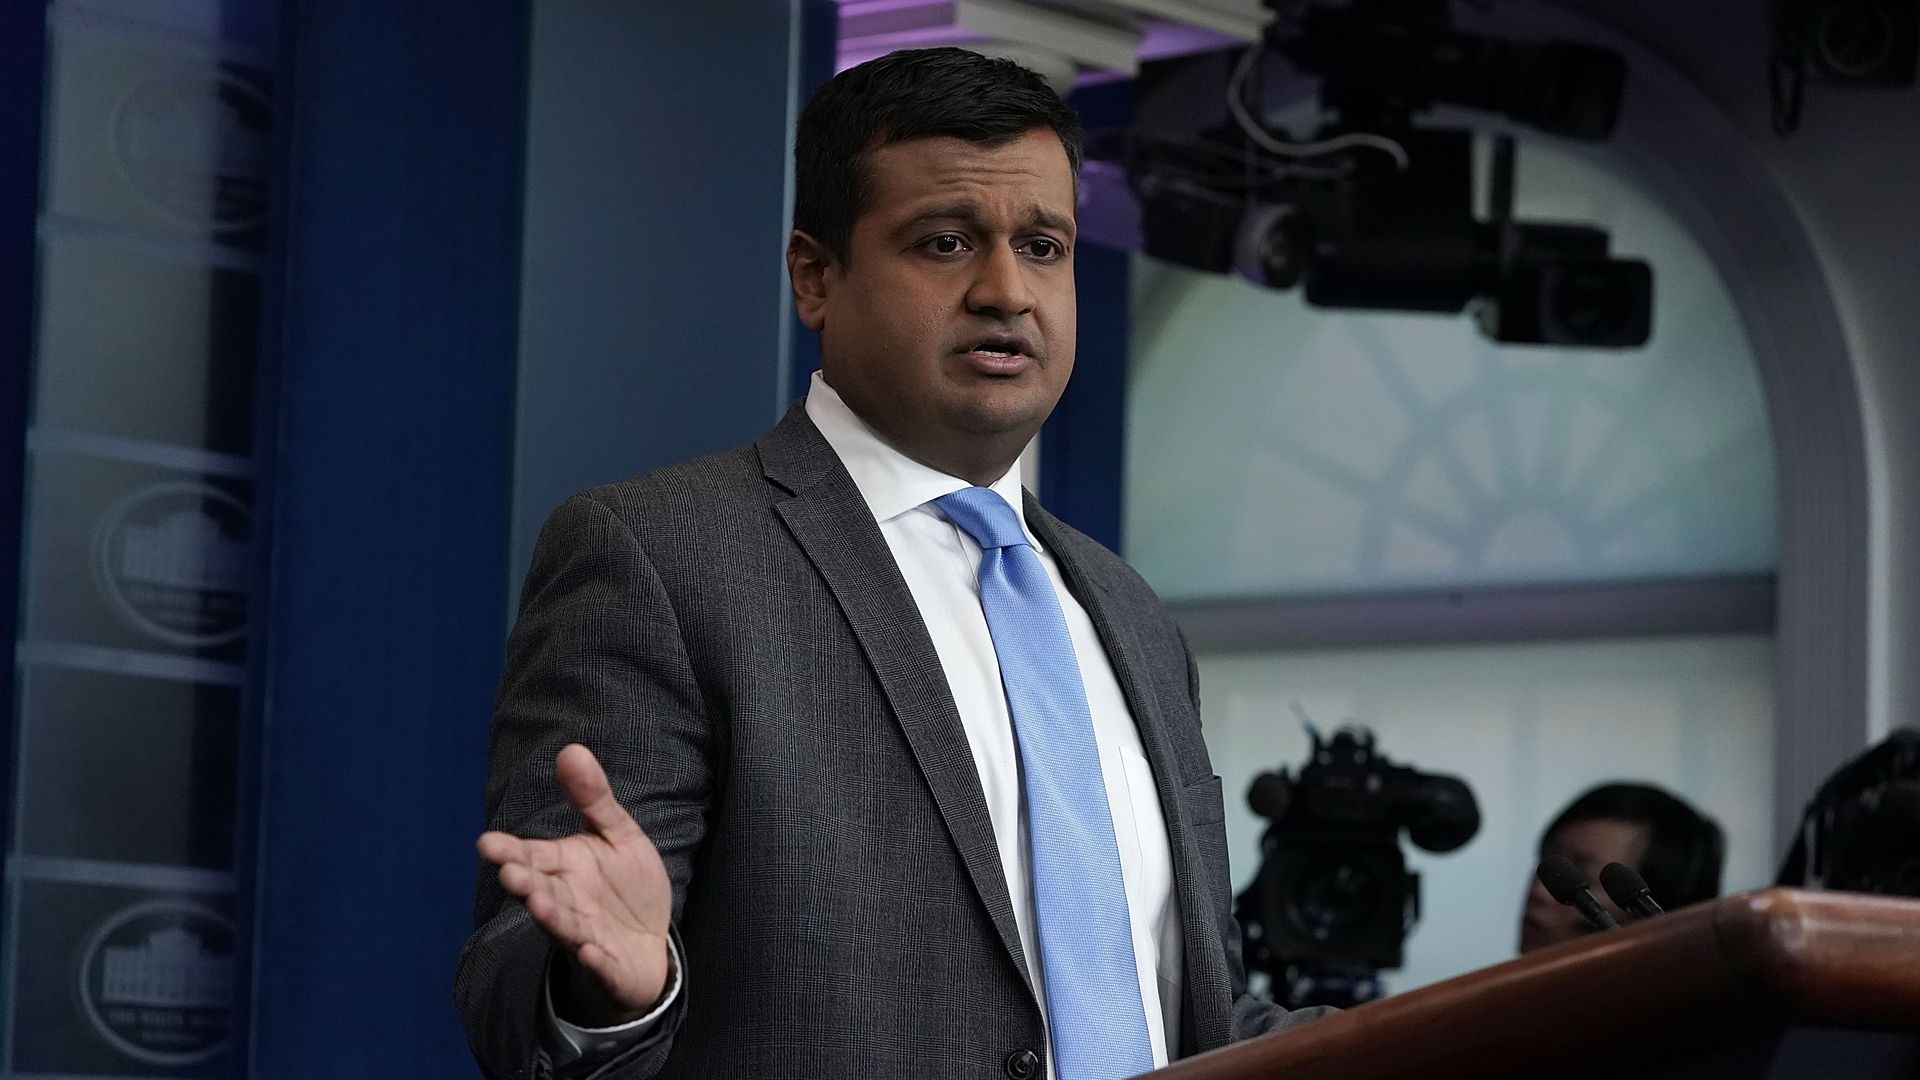 White House deputy press secretary Raj Shah.